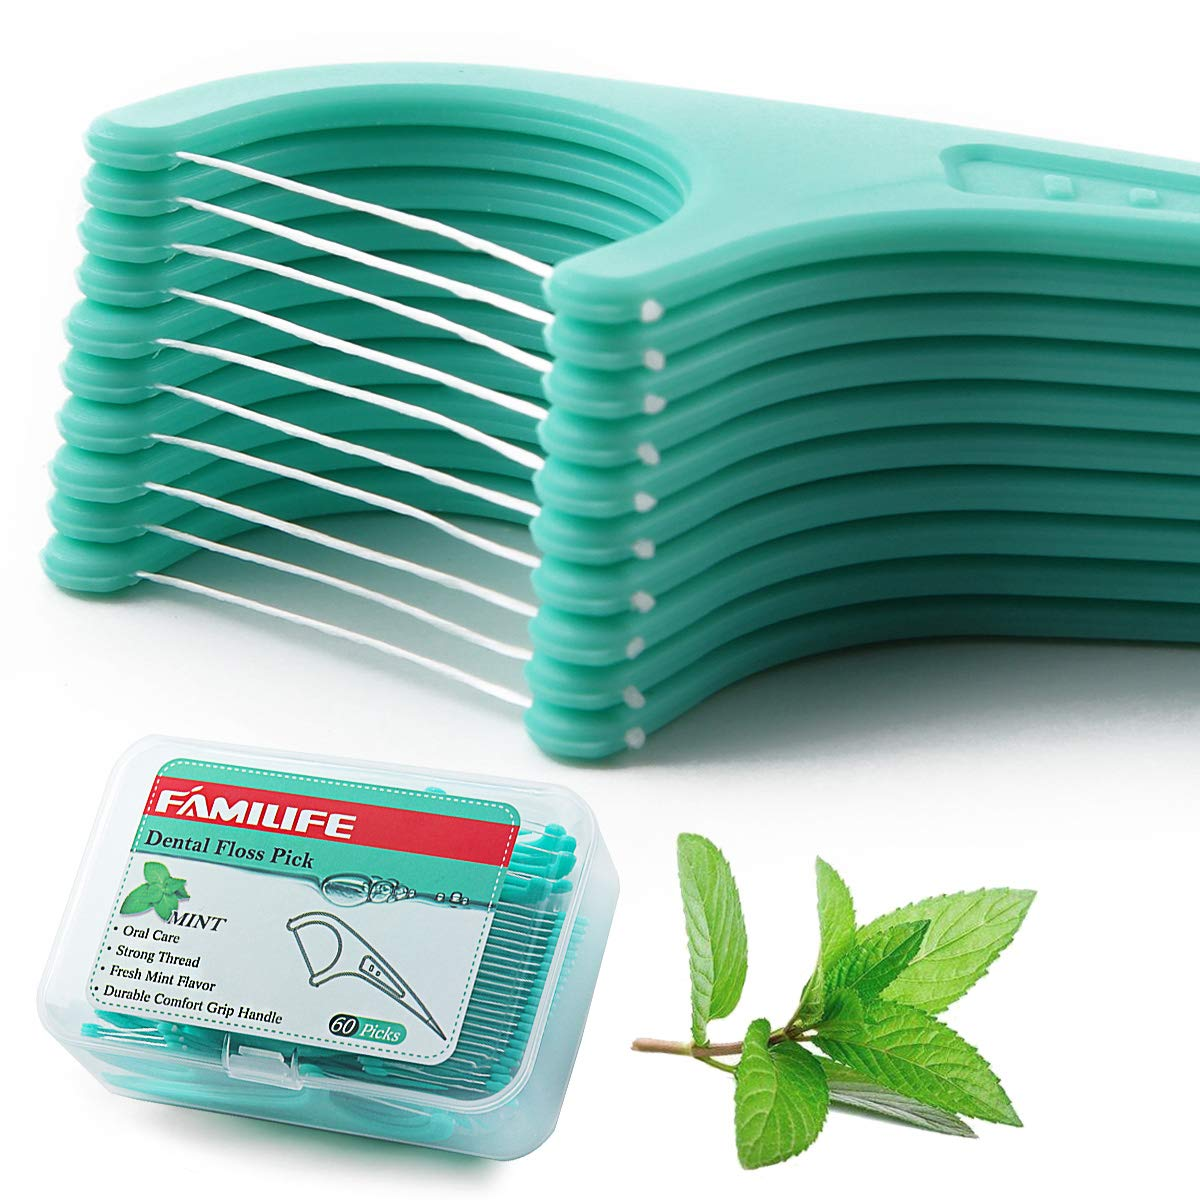 FAMILIFE Floss Picks Mint Dental Floss Picks with 4 Travel Handy Cases 240 Count Flossers: Beauty